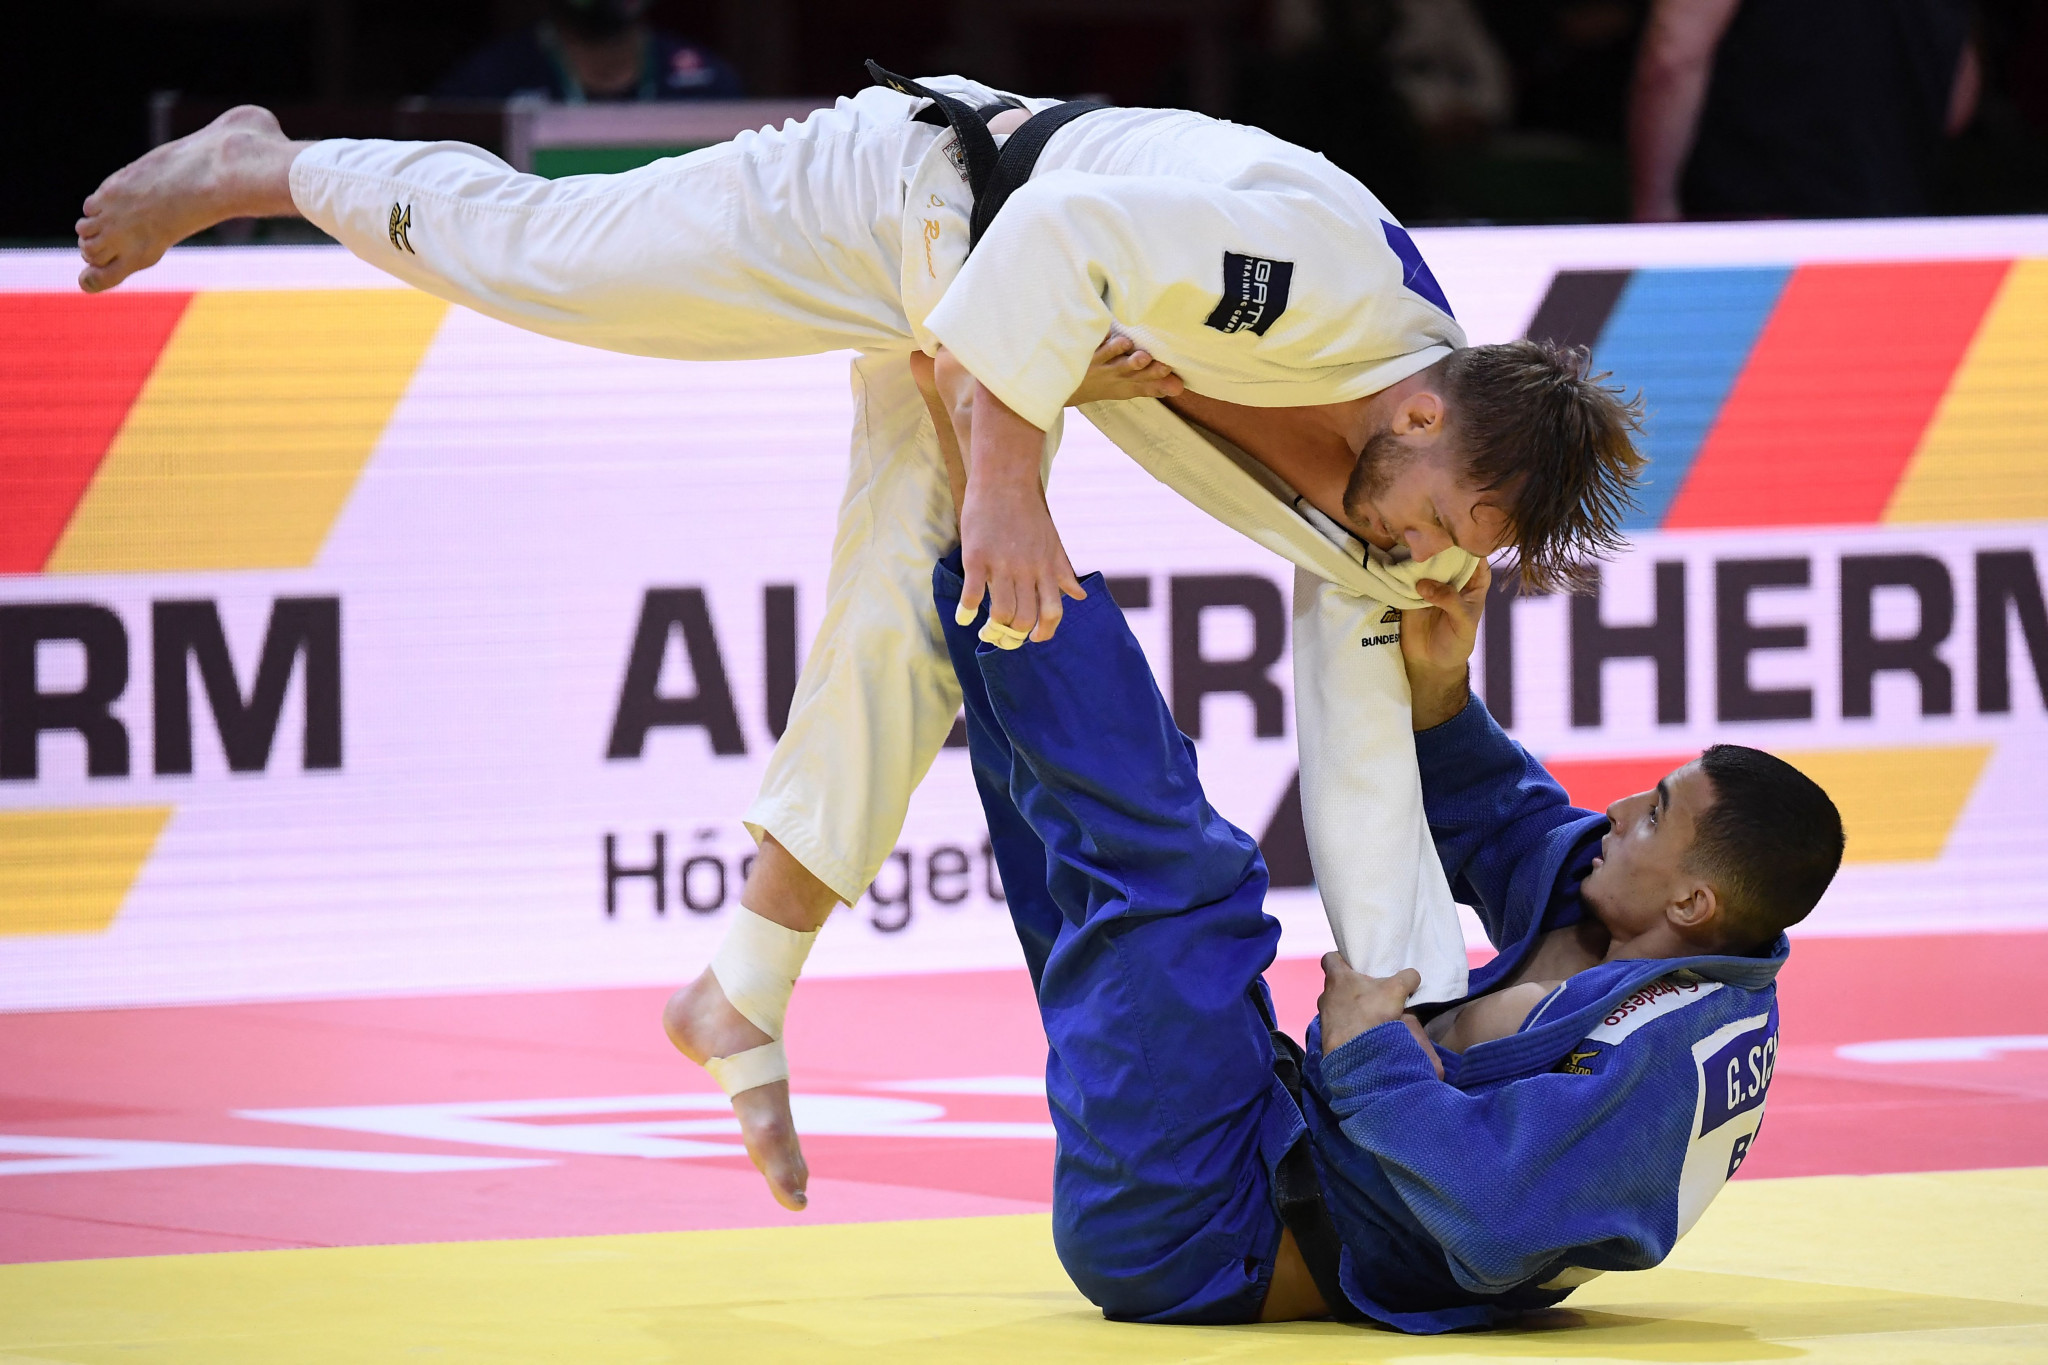 Brazilian Guilherme Schmidt, in blue, lifts Dominic Ressel of Germany off the floor in a closely-fought second-round battle ©Getty Images